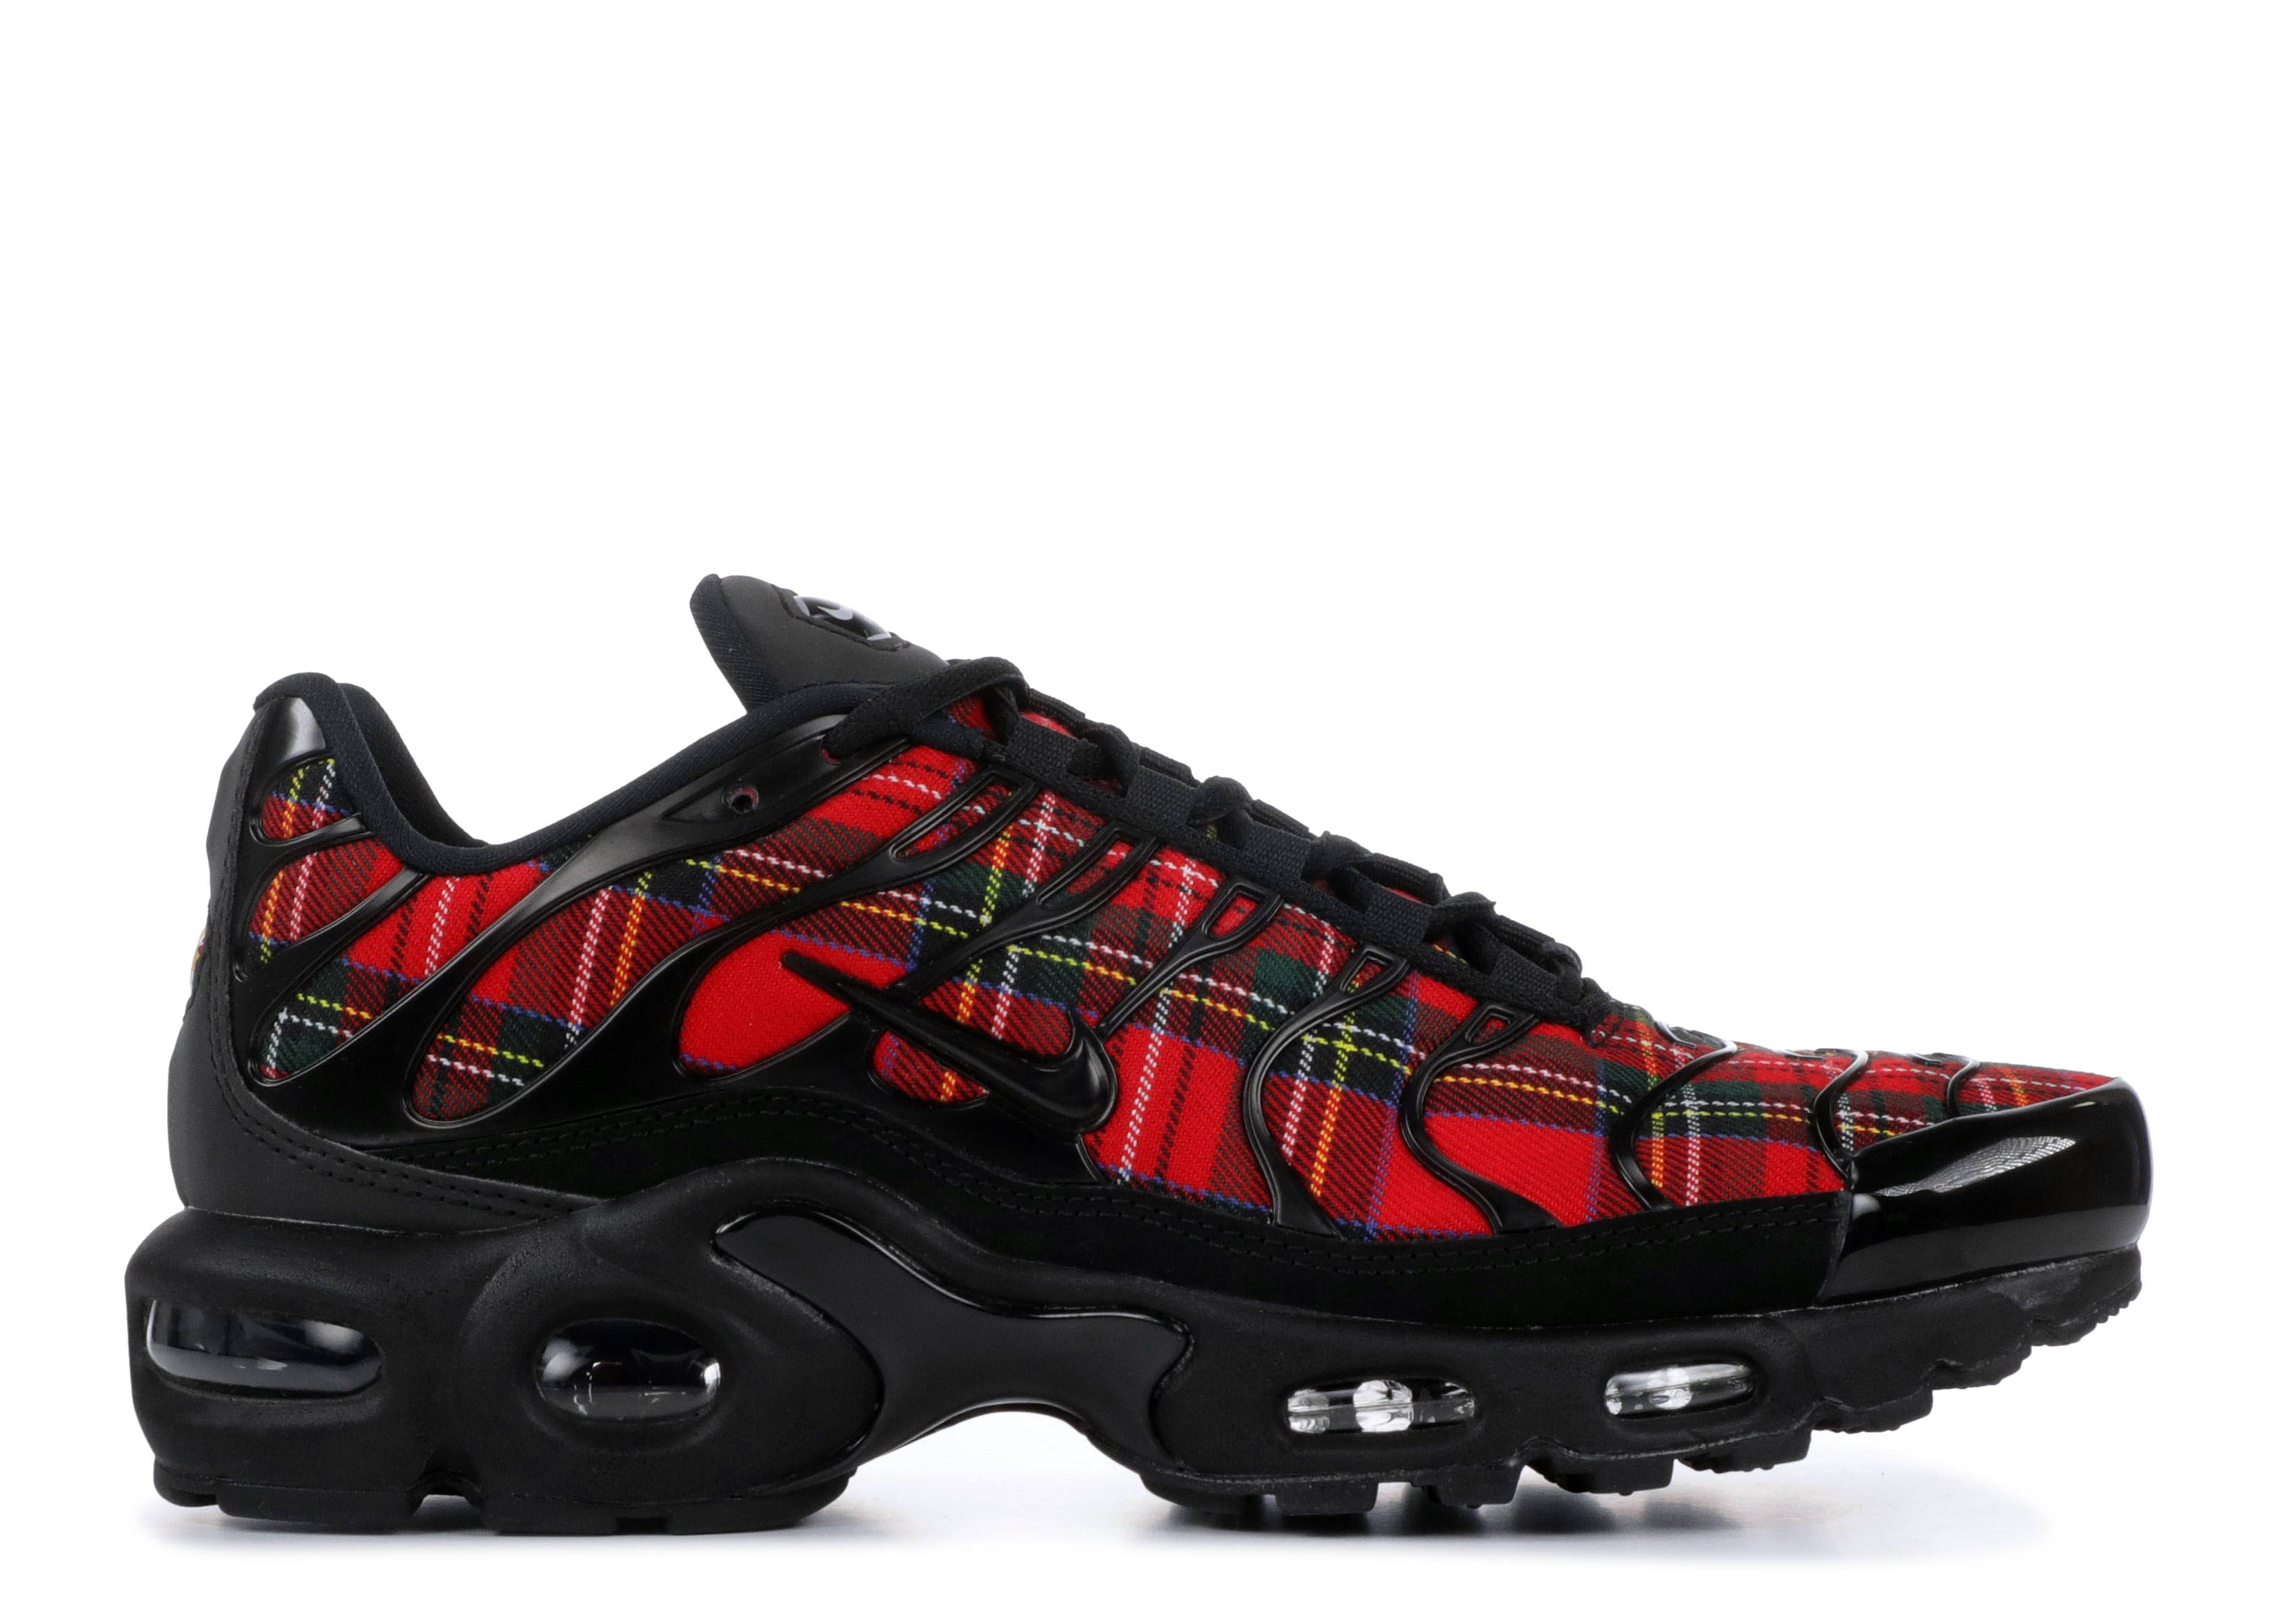 Wmns Air Max Plus Tn Se Tartan - Nike - av9955 001 - black/black ...